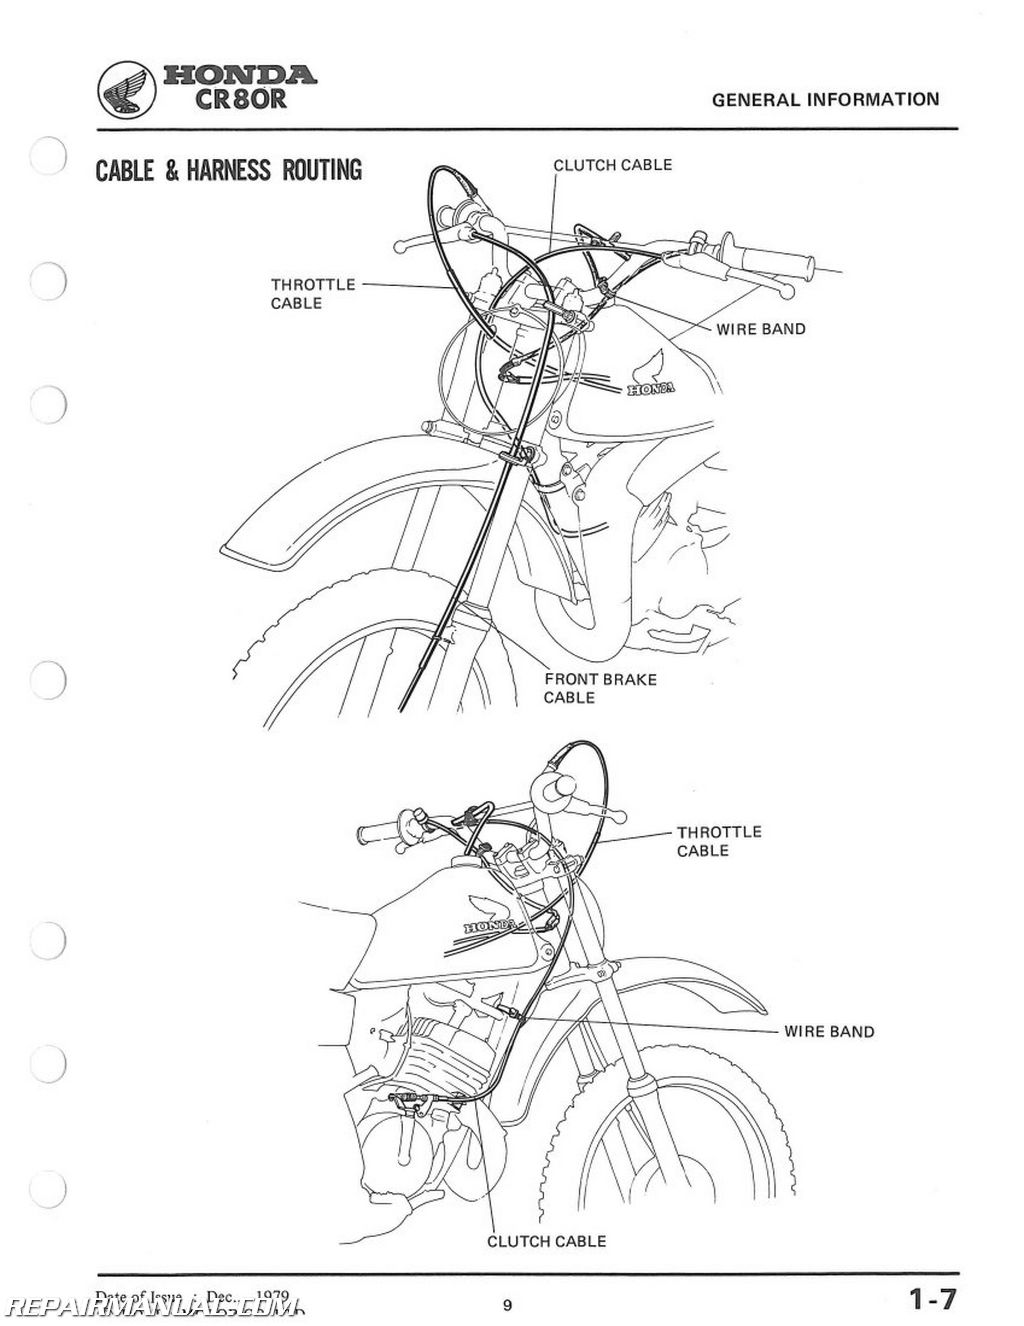 1985 Honda Cr80 Wiring Diagram Cr Service Manual Cyclepedia Accord Stereo Images Civic Diagramhondacar Pictures Database